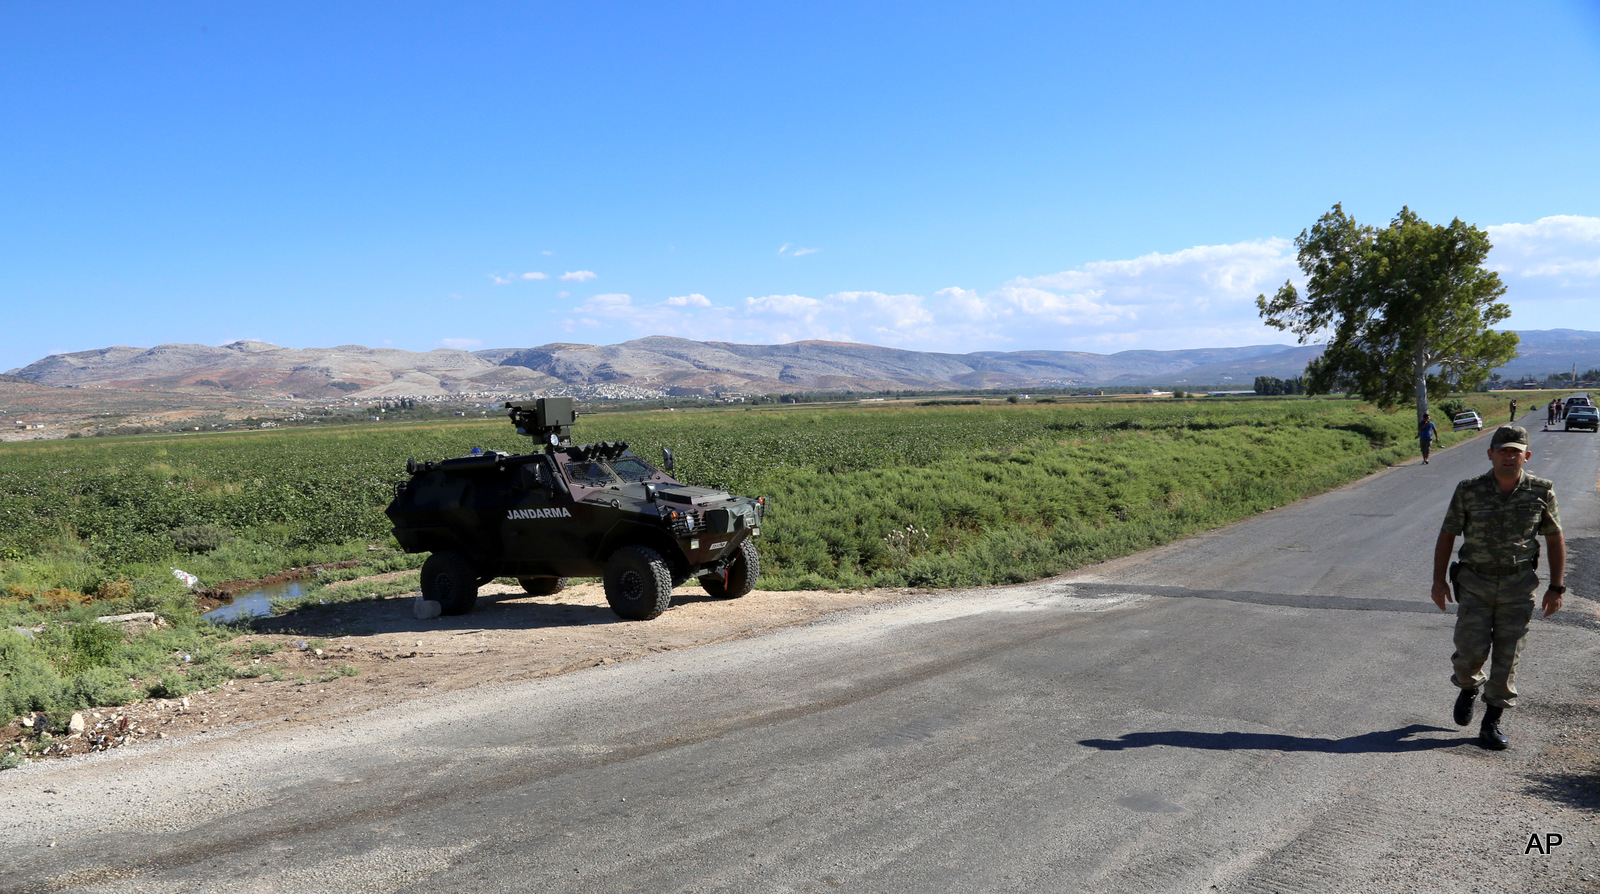 Turkish soldiers patrol a road near Hacipasa, Hatay, Turkey. At the peak of Turkey's oil smuggling boom, the main transit point was a dusty hamlet called Hacipasa on the Orontes River that marks the border with Syria, Saturday, Sept. 20, 2014. Hacipasa has been a smuggling haven for decades, authorities and residents say. The fuel had come from oil wells in Iraq or Syria controlled by militants, including the Islamic State group, and was sold to middle men who smuggled it across the Turkish-Syrian border.